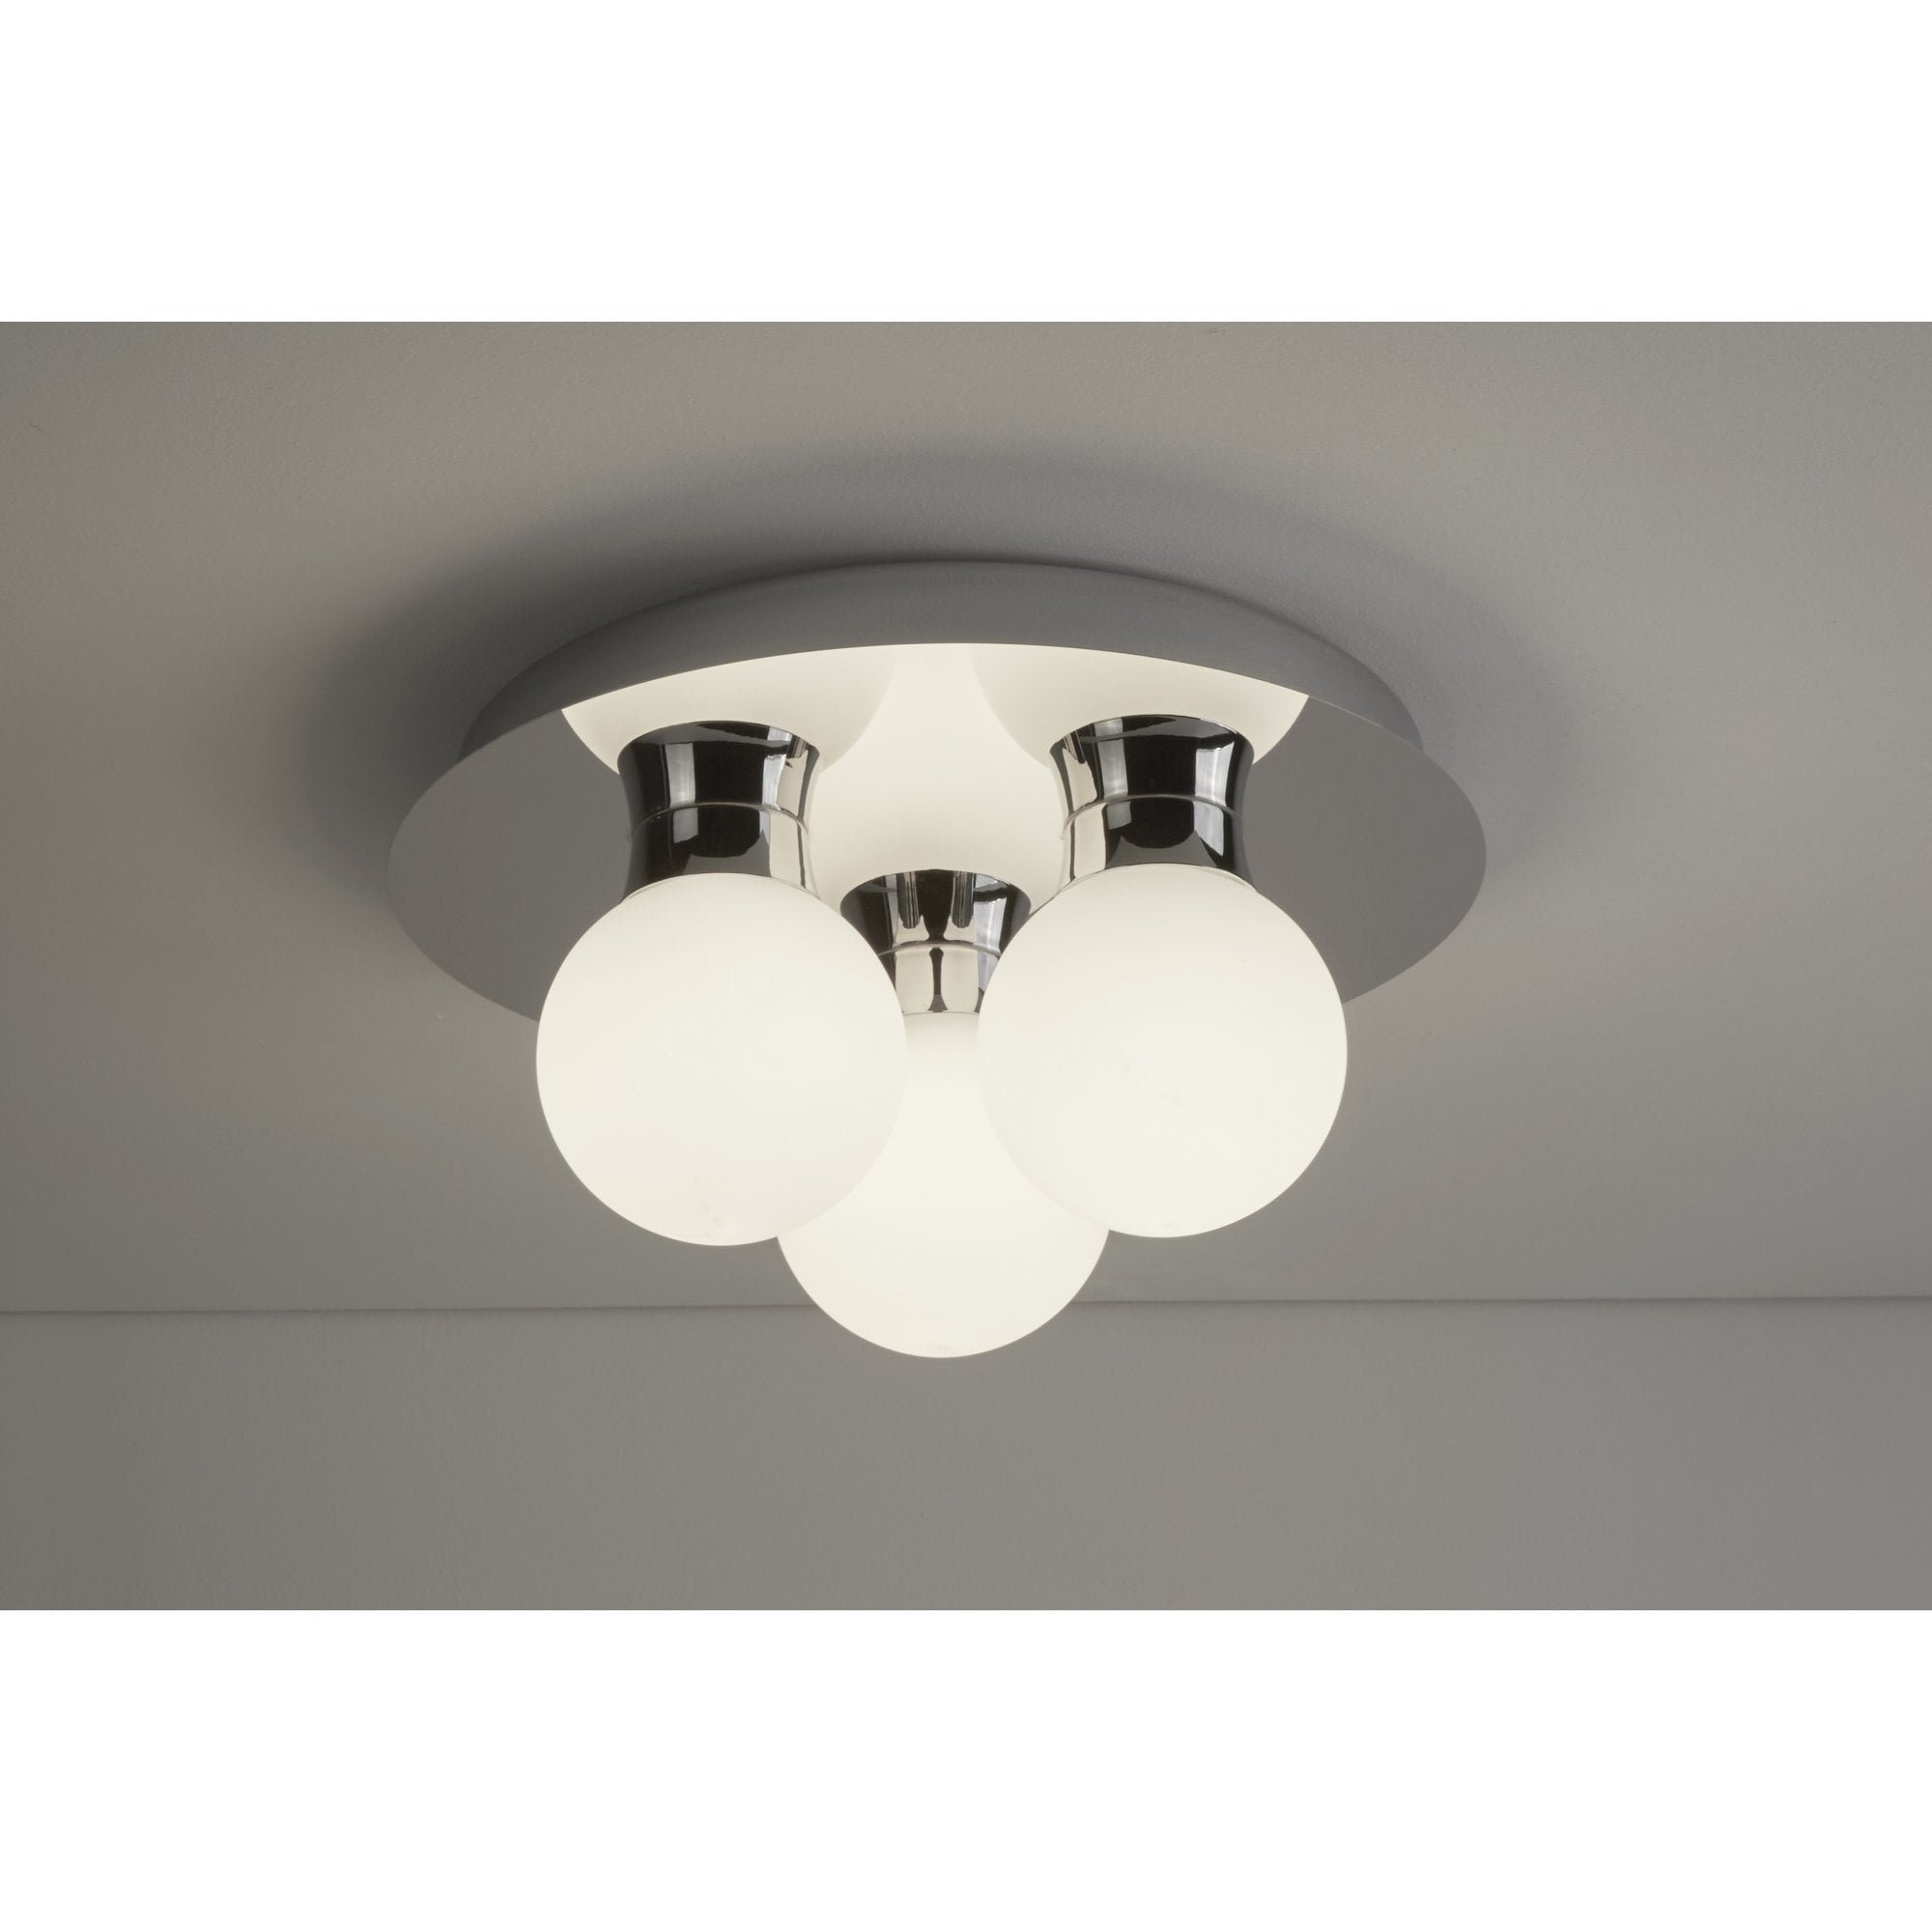 Thlc Contemporary Led Bathroom Ceiling Light In Polished Chrome Finish Ip44 Lighting From The Home Lighting Centre Uk